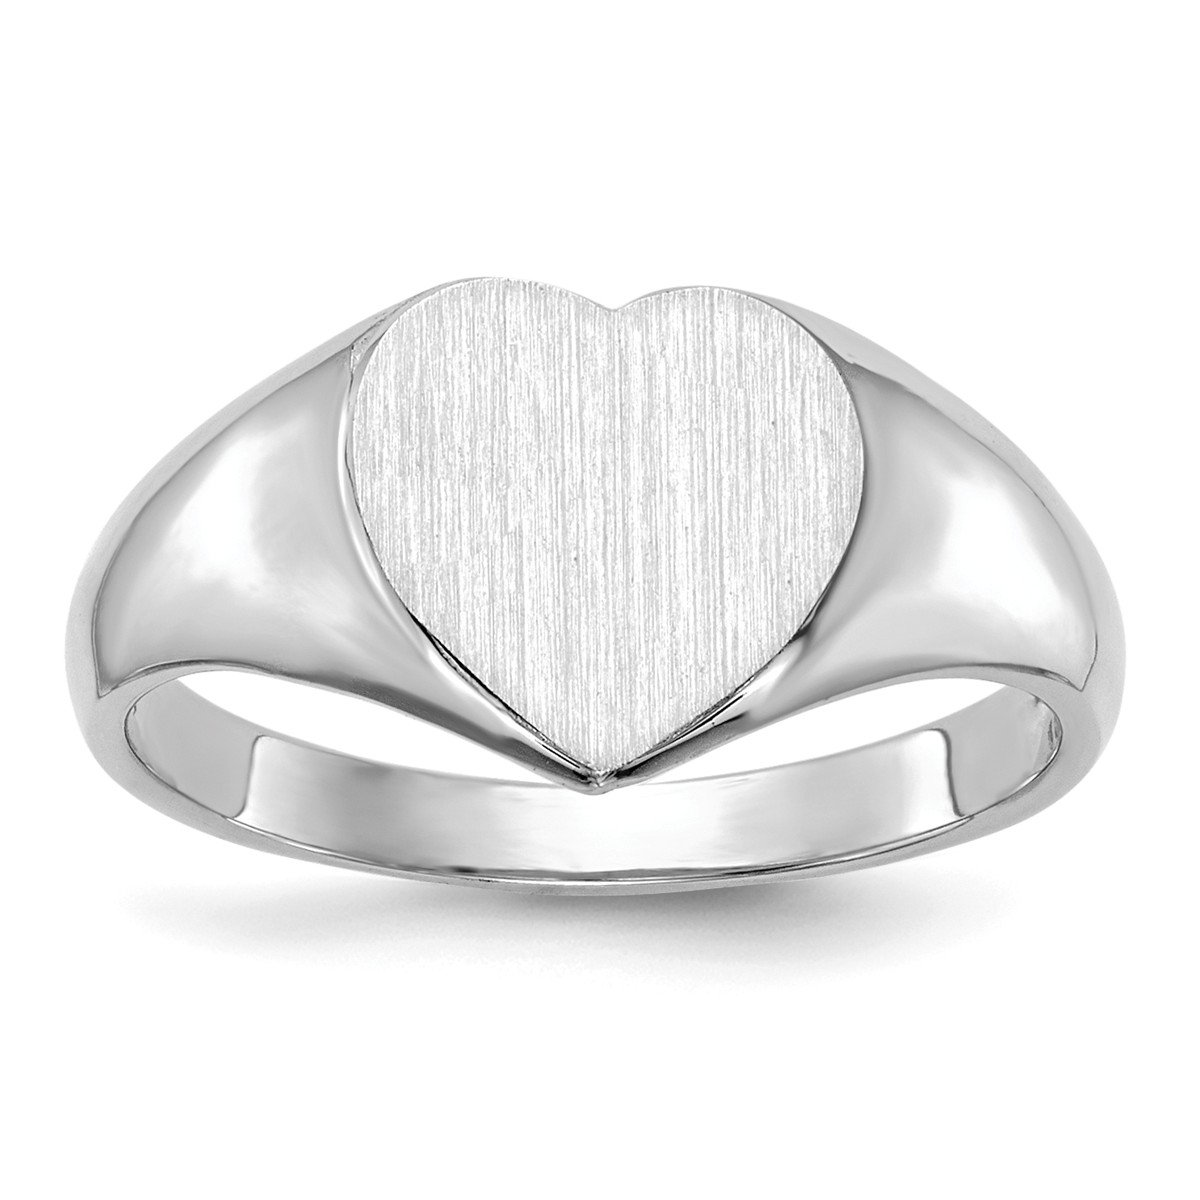 Roy Rose Jewelry 14K White Gold Open Back Womens Heart Design Top Signet Ring Custom Personailzed with Free Engraving Available Initial ~ Size 4